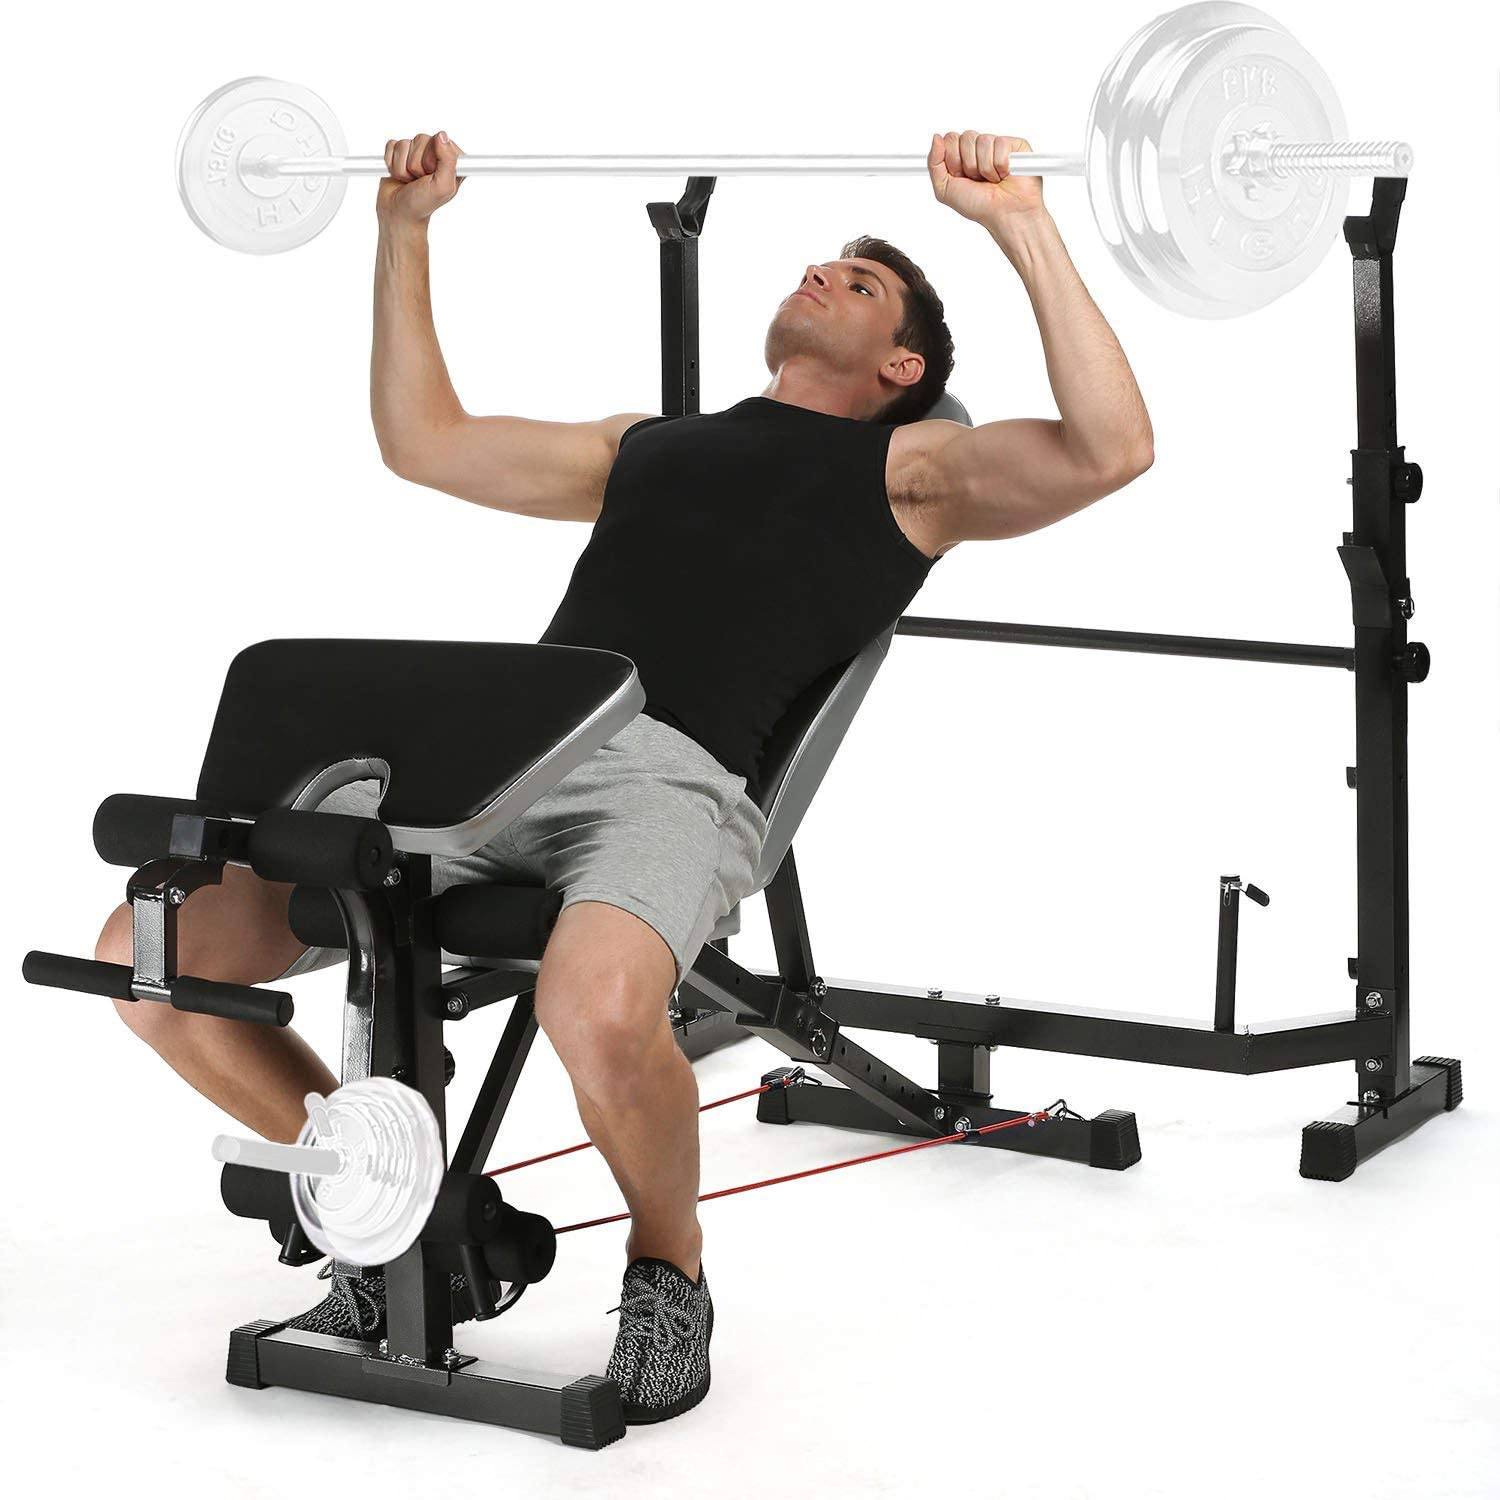 Adjustable Olympic Workout Weight Lifting Bench w// Rack Incline Decline Flat Gym